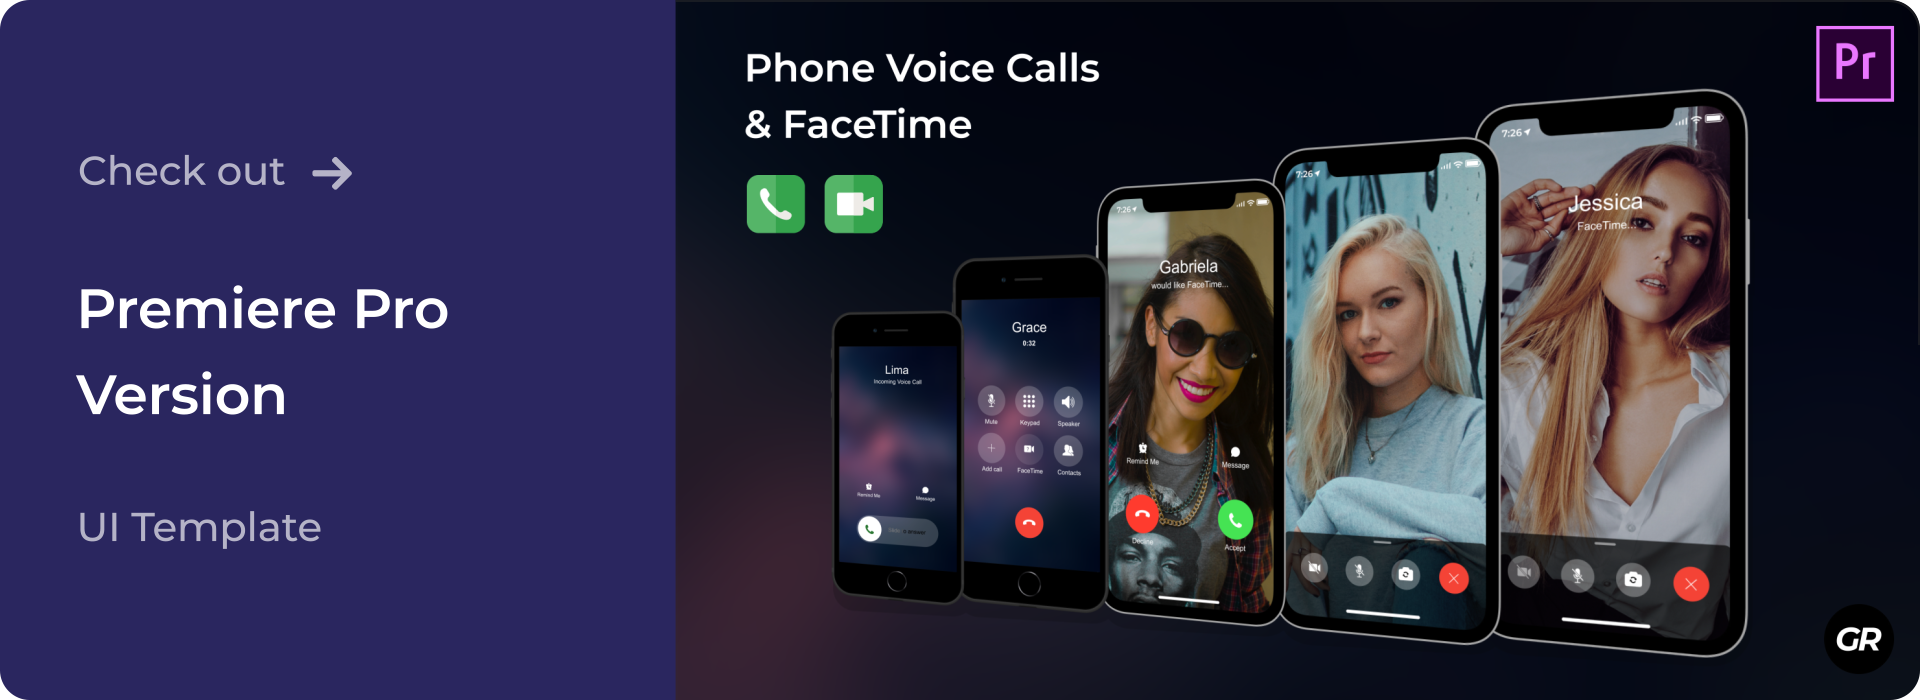 Check out iPhone Calls UI Template